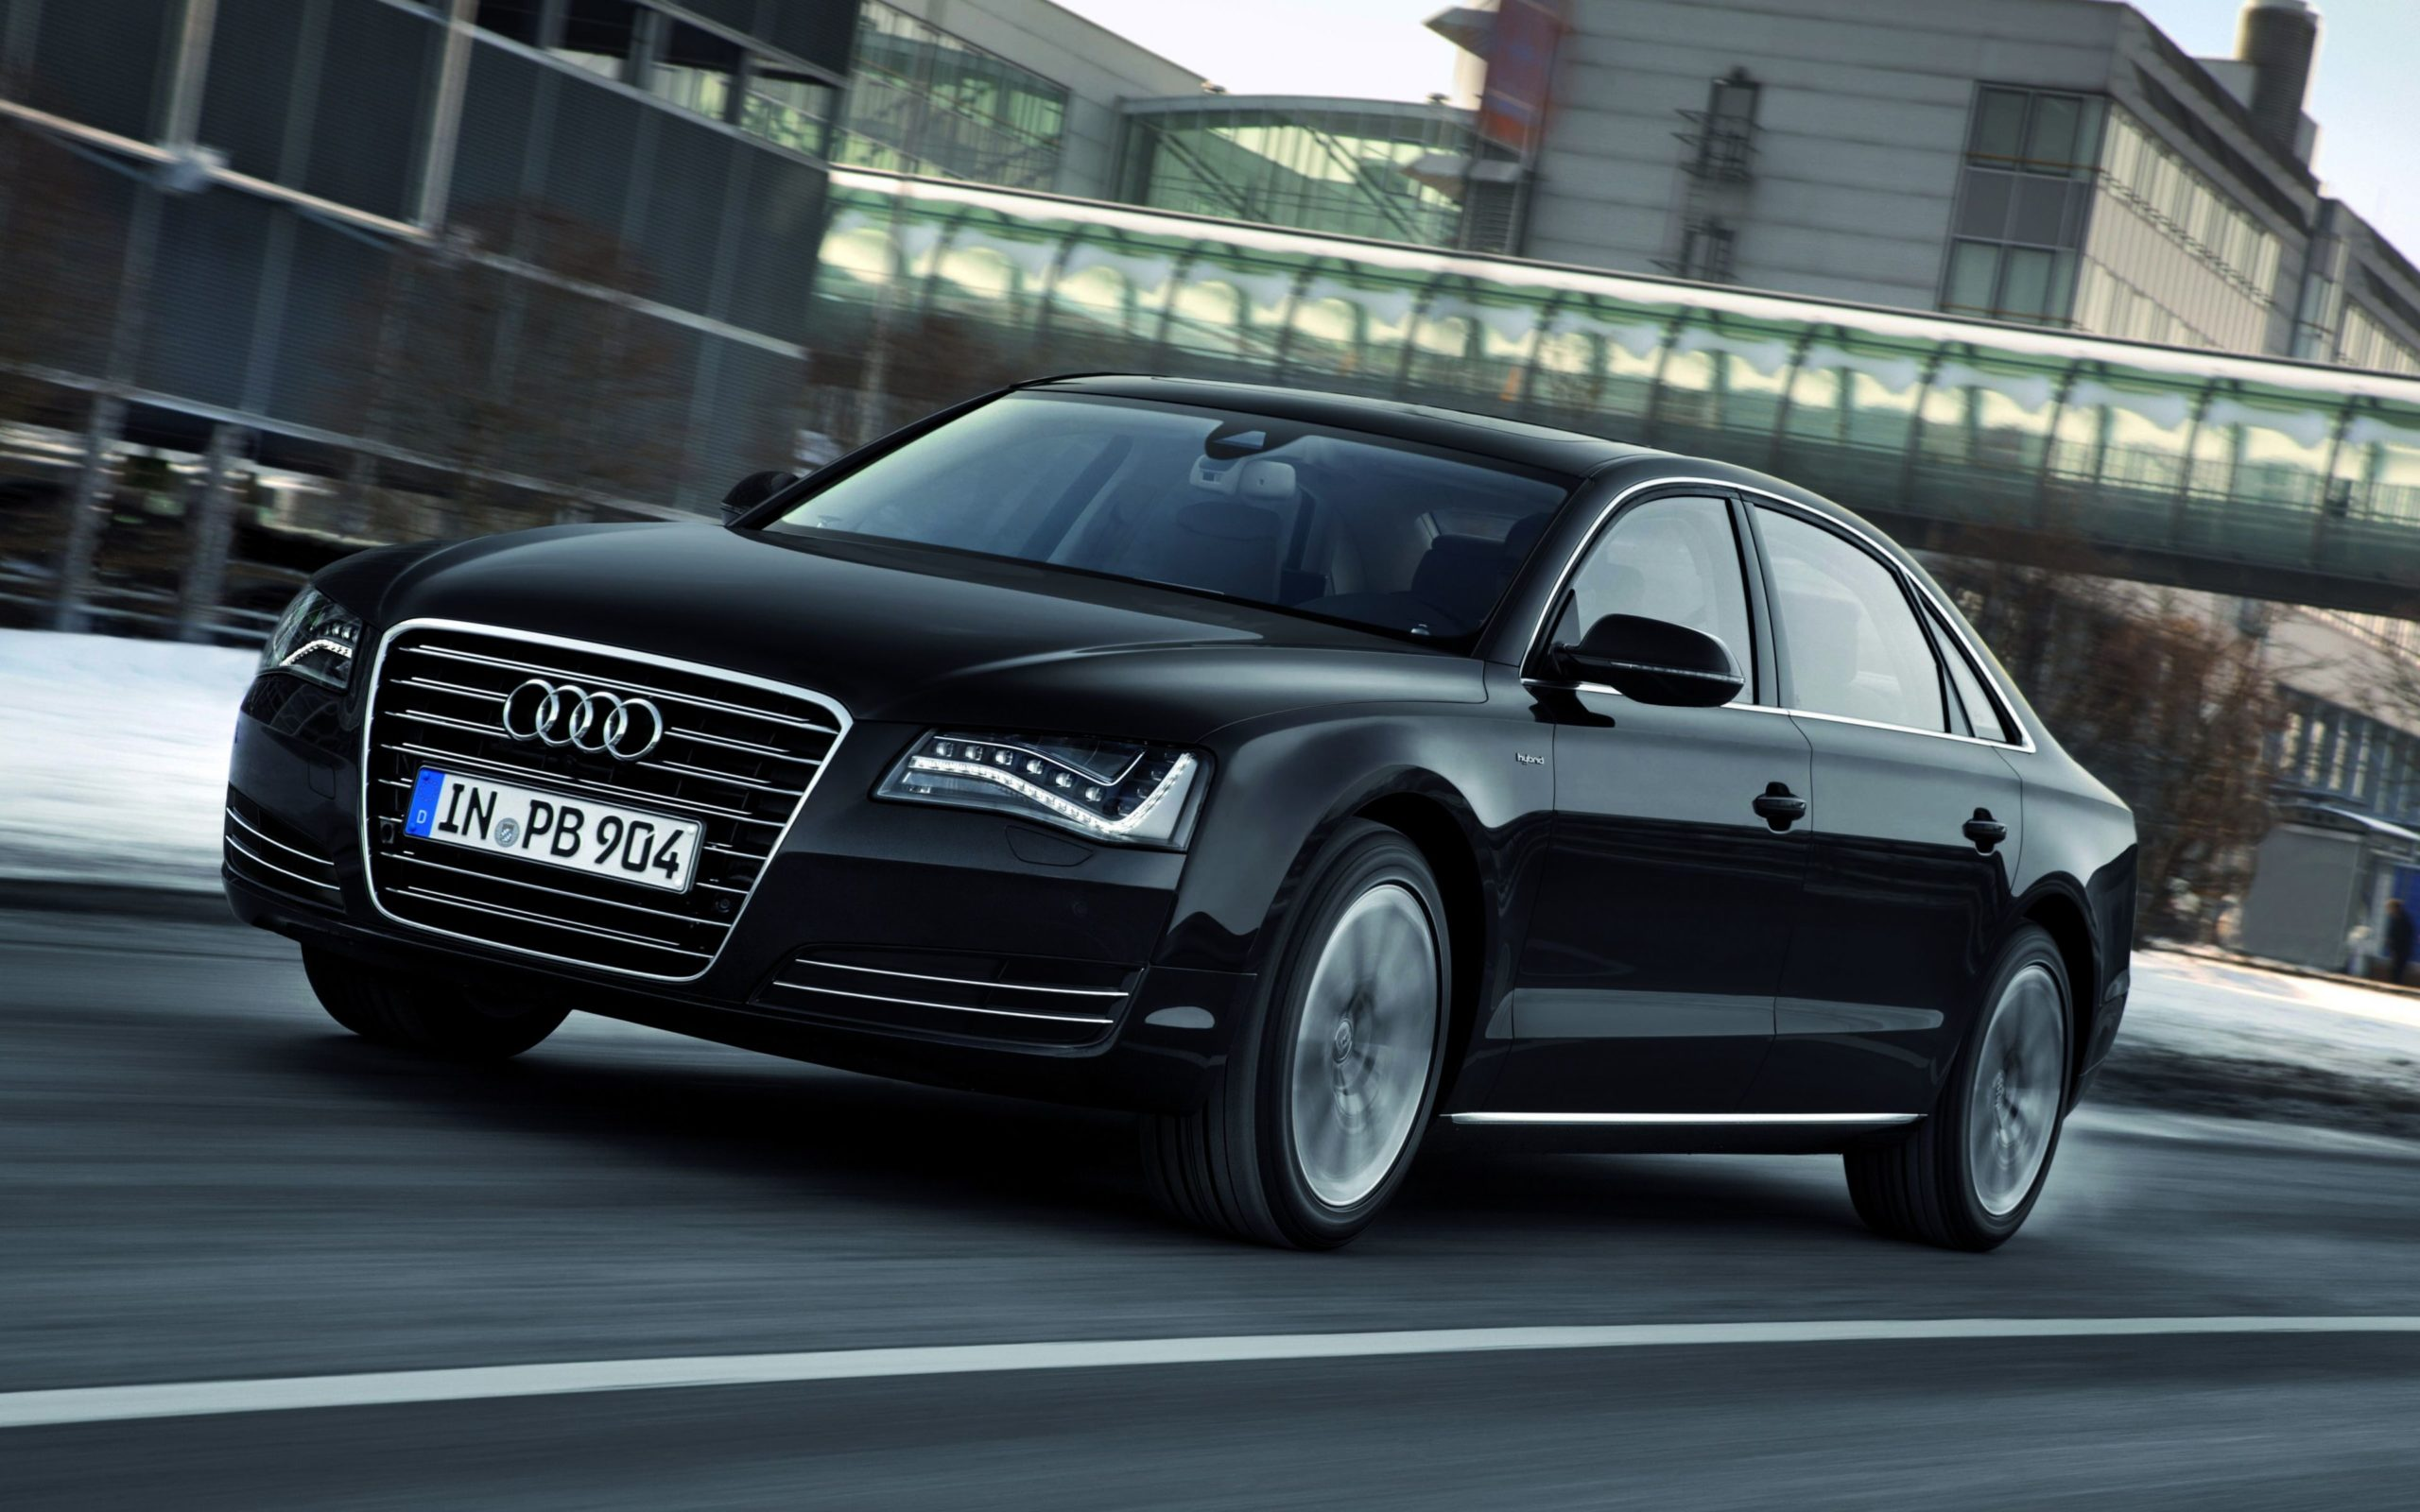 audi car images download